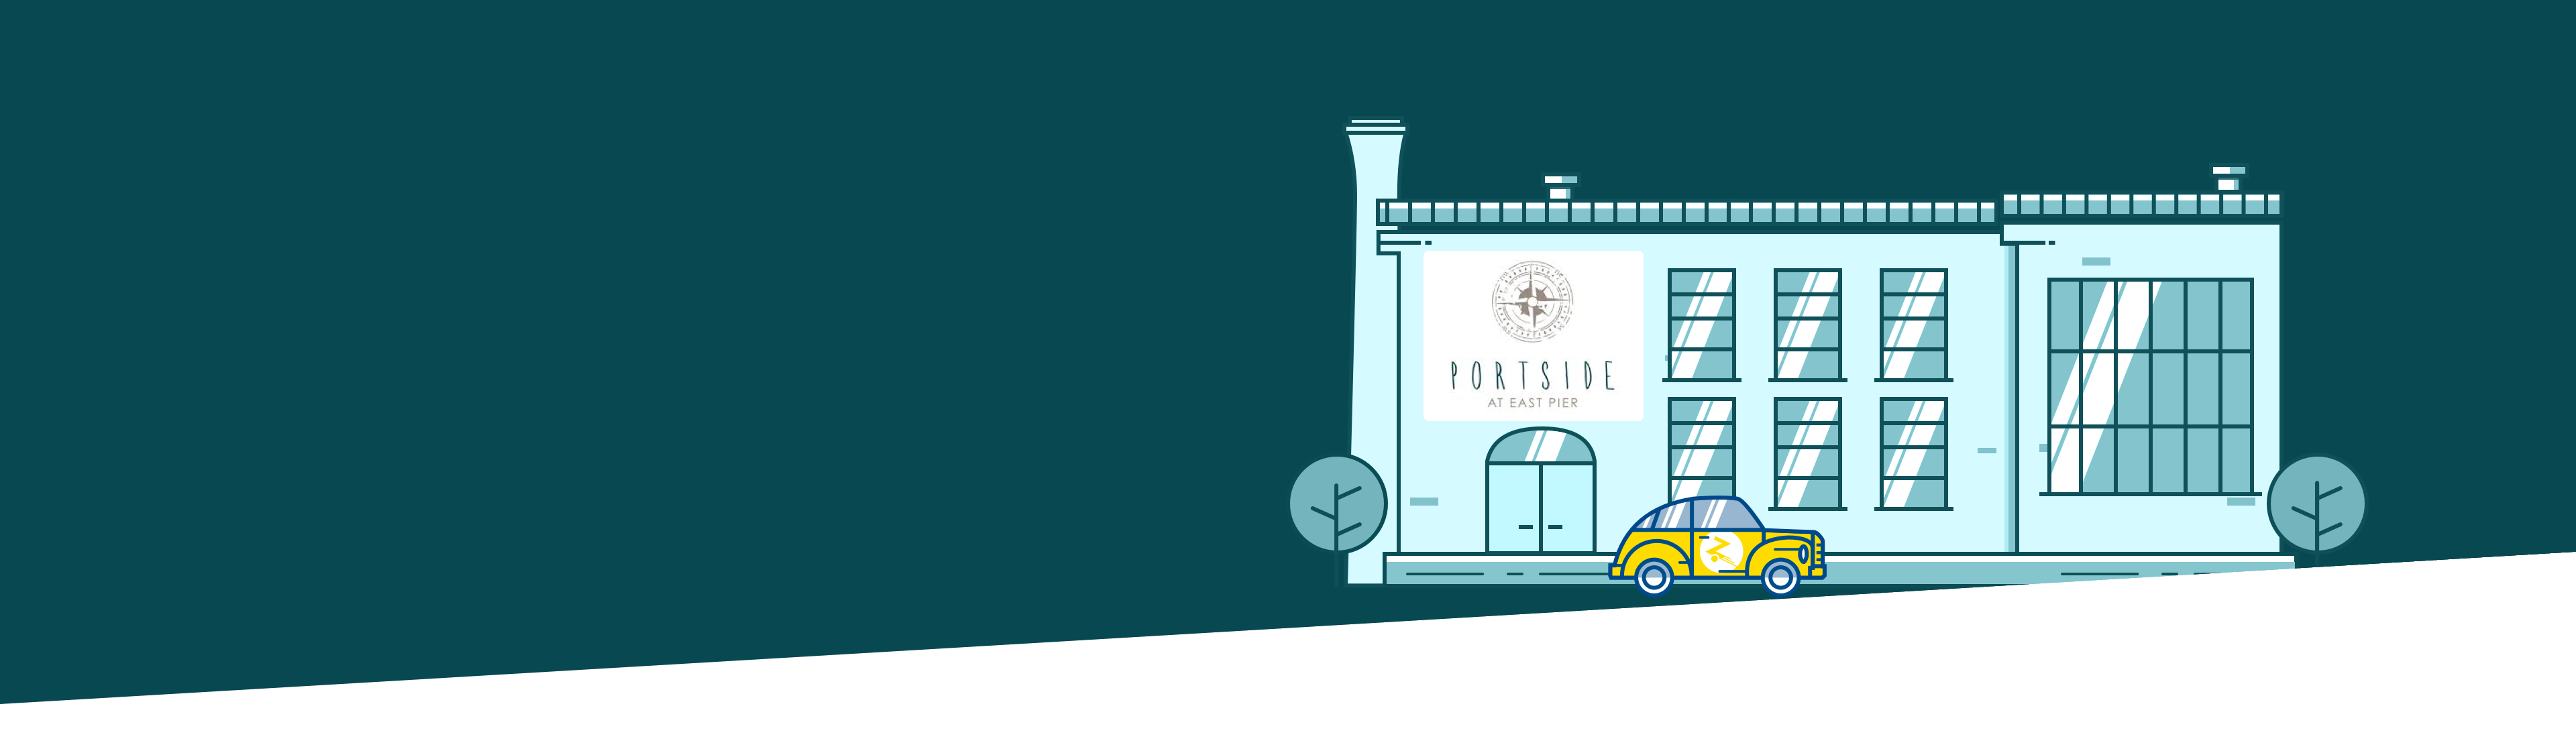 portside white logo